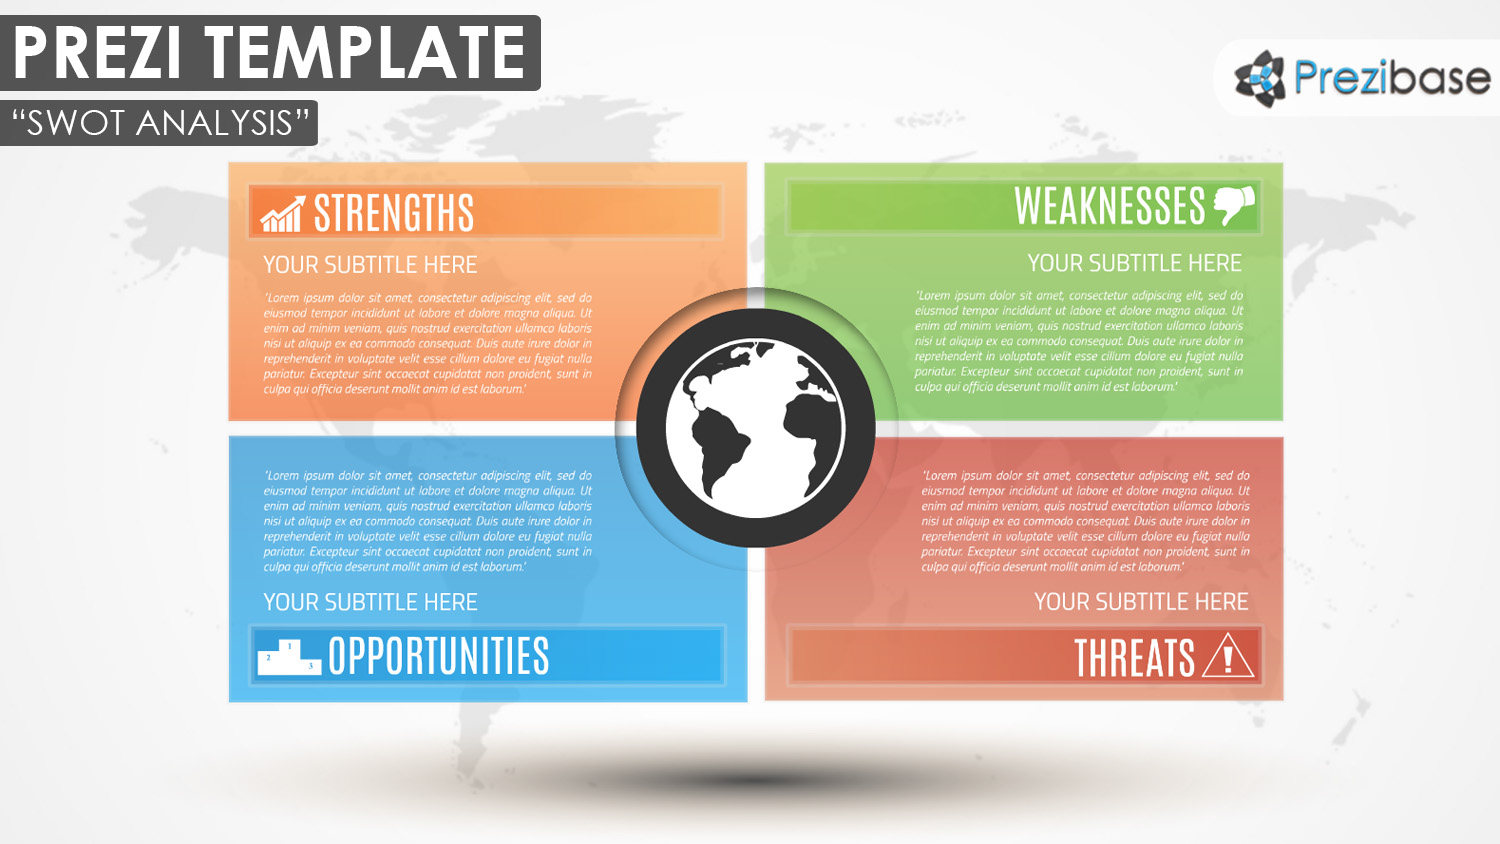 Business prezi templates prezibase swot analysis prezi pronofoot35fo Gallery